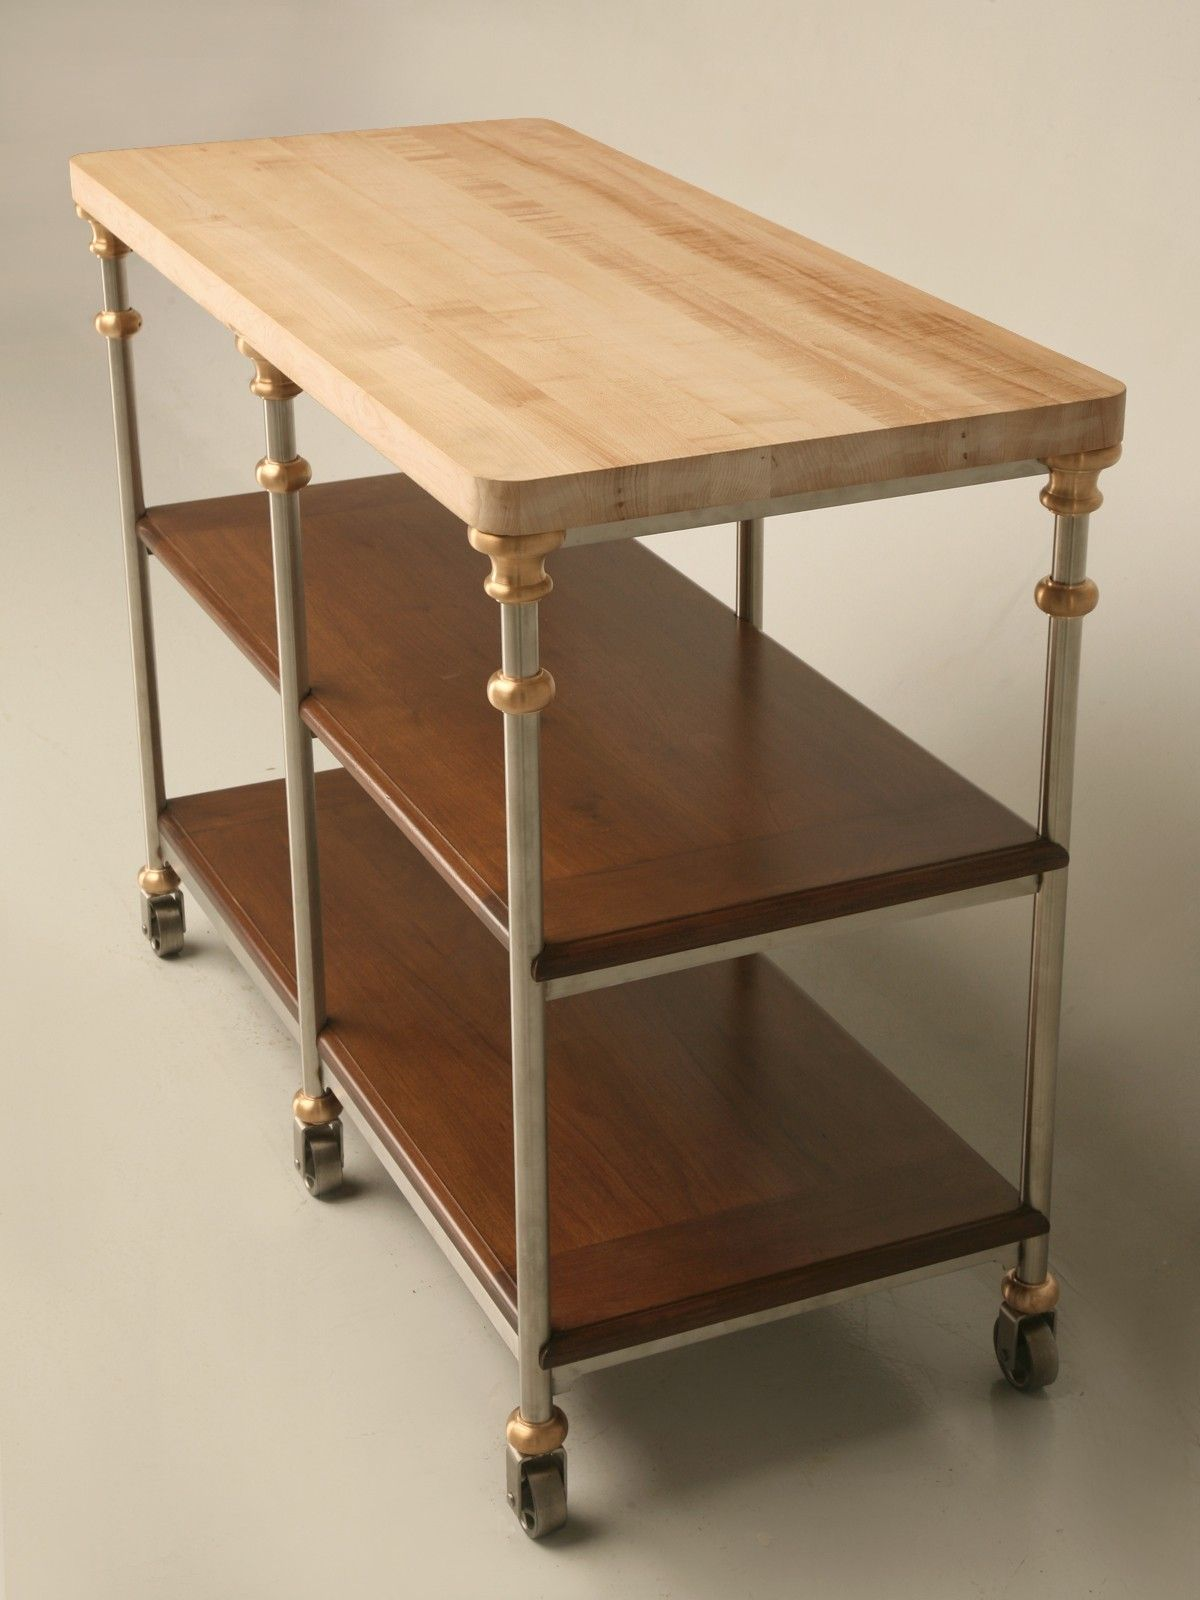 Shallow Stainless Steel Kitchen Island With Oak Shelves And Butcher Block Top Oak Shelves Butcher Block Island Kitchen Antique Kitchen Island